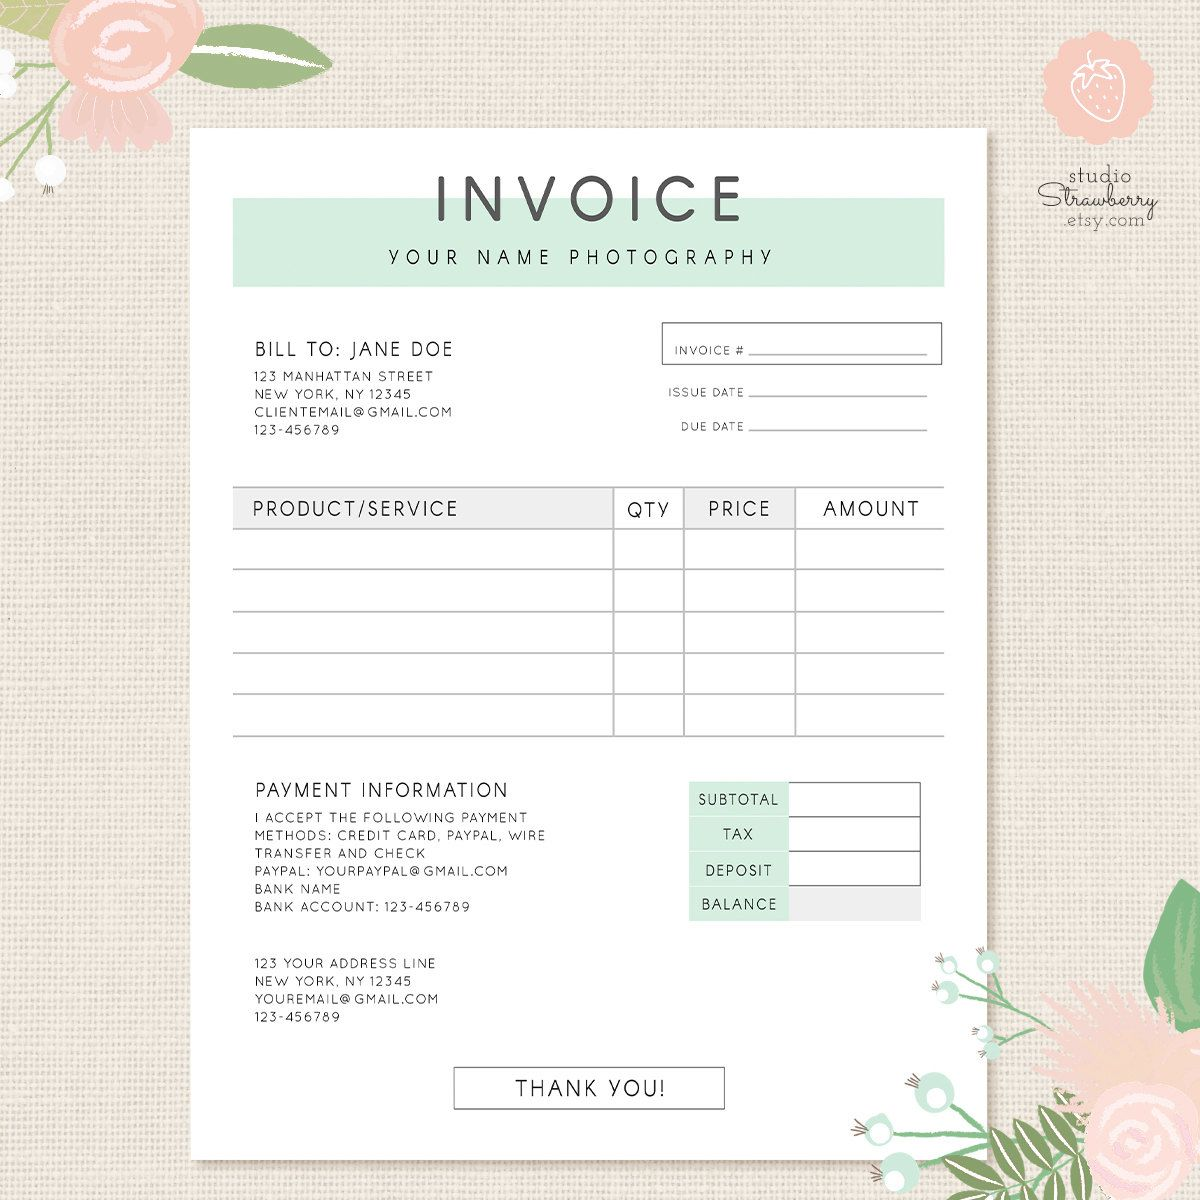 Invoice Template Photography Invoice Business Invoice Receipt - Invoice template with credit card payment option